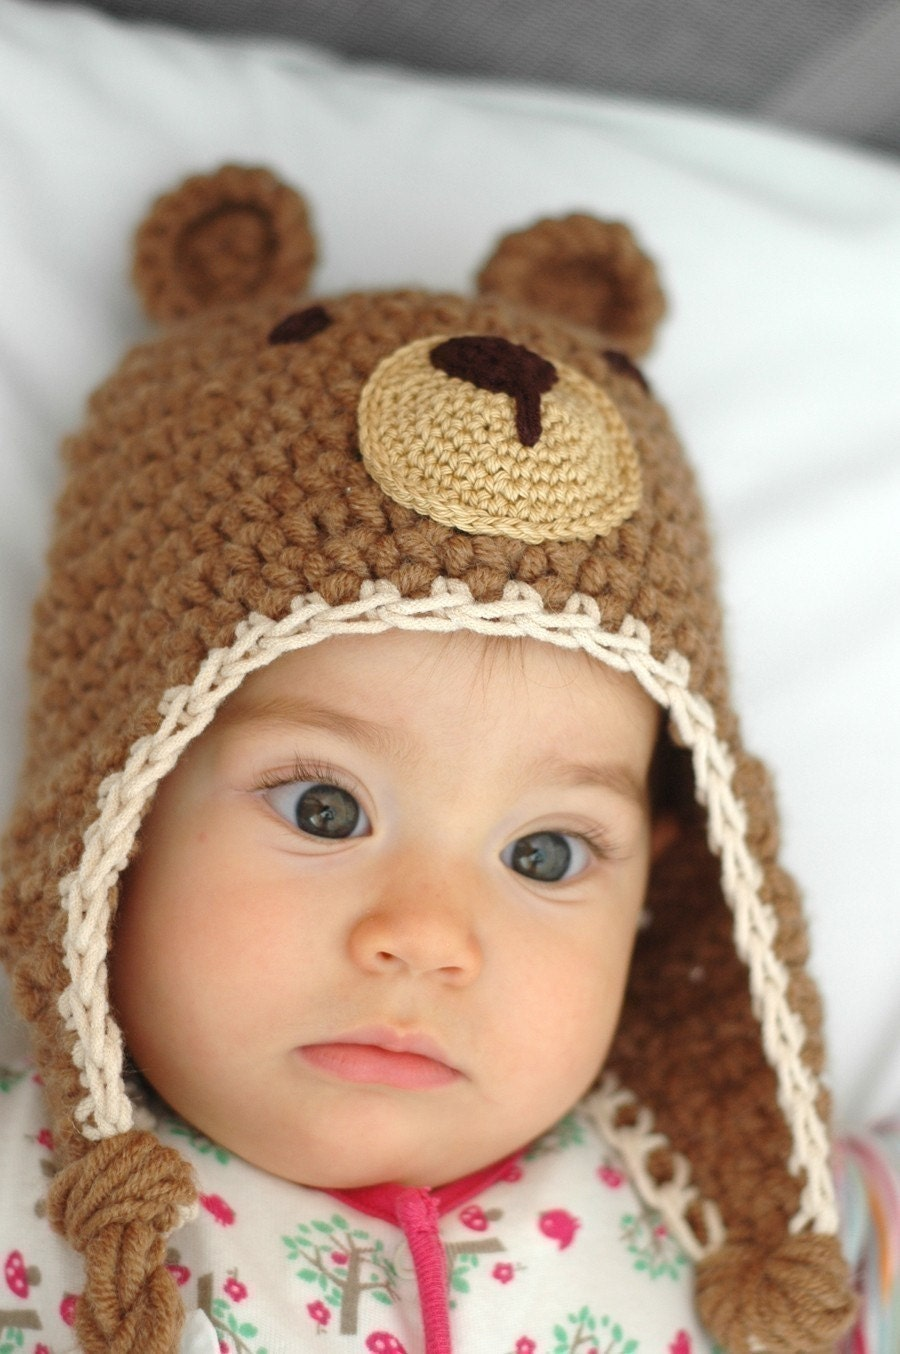 Teddy Bear Hat 6 to 12 Months and 12 to 24 Months by beliz82